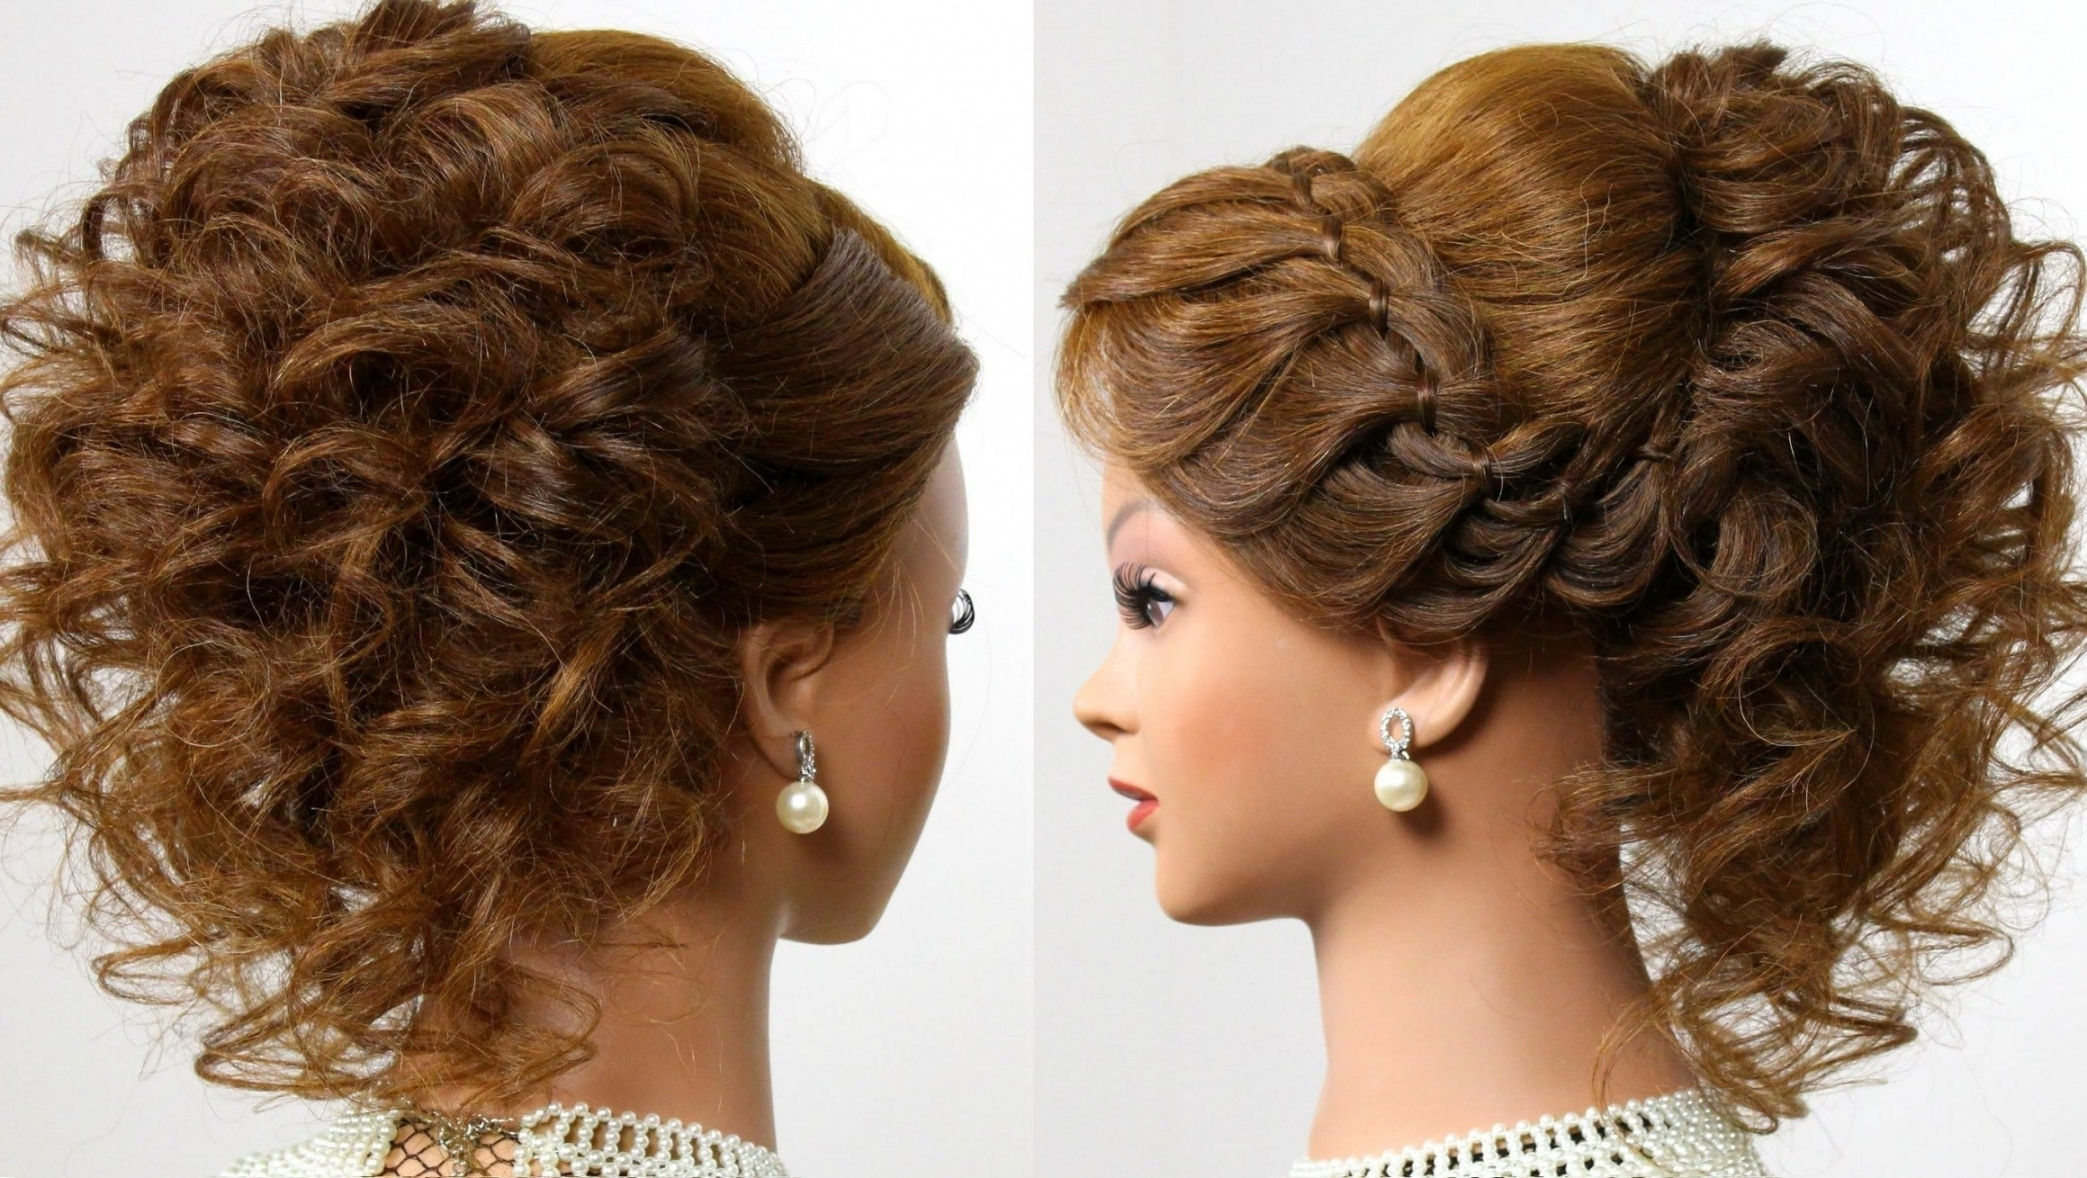 Updo Hairstyles For Curly Hair In Updo Hairstyles For Medium Curly Hair (Gallery 7 of 15)